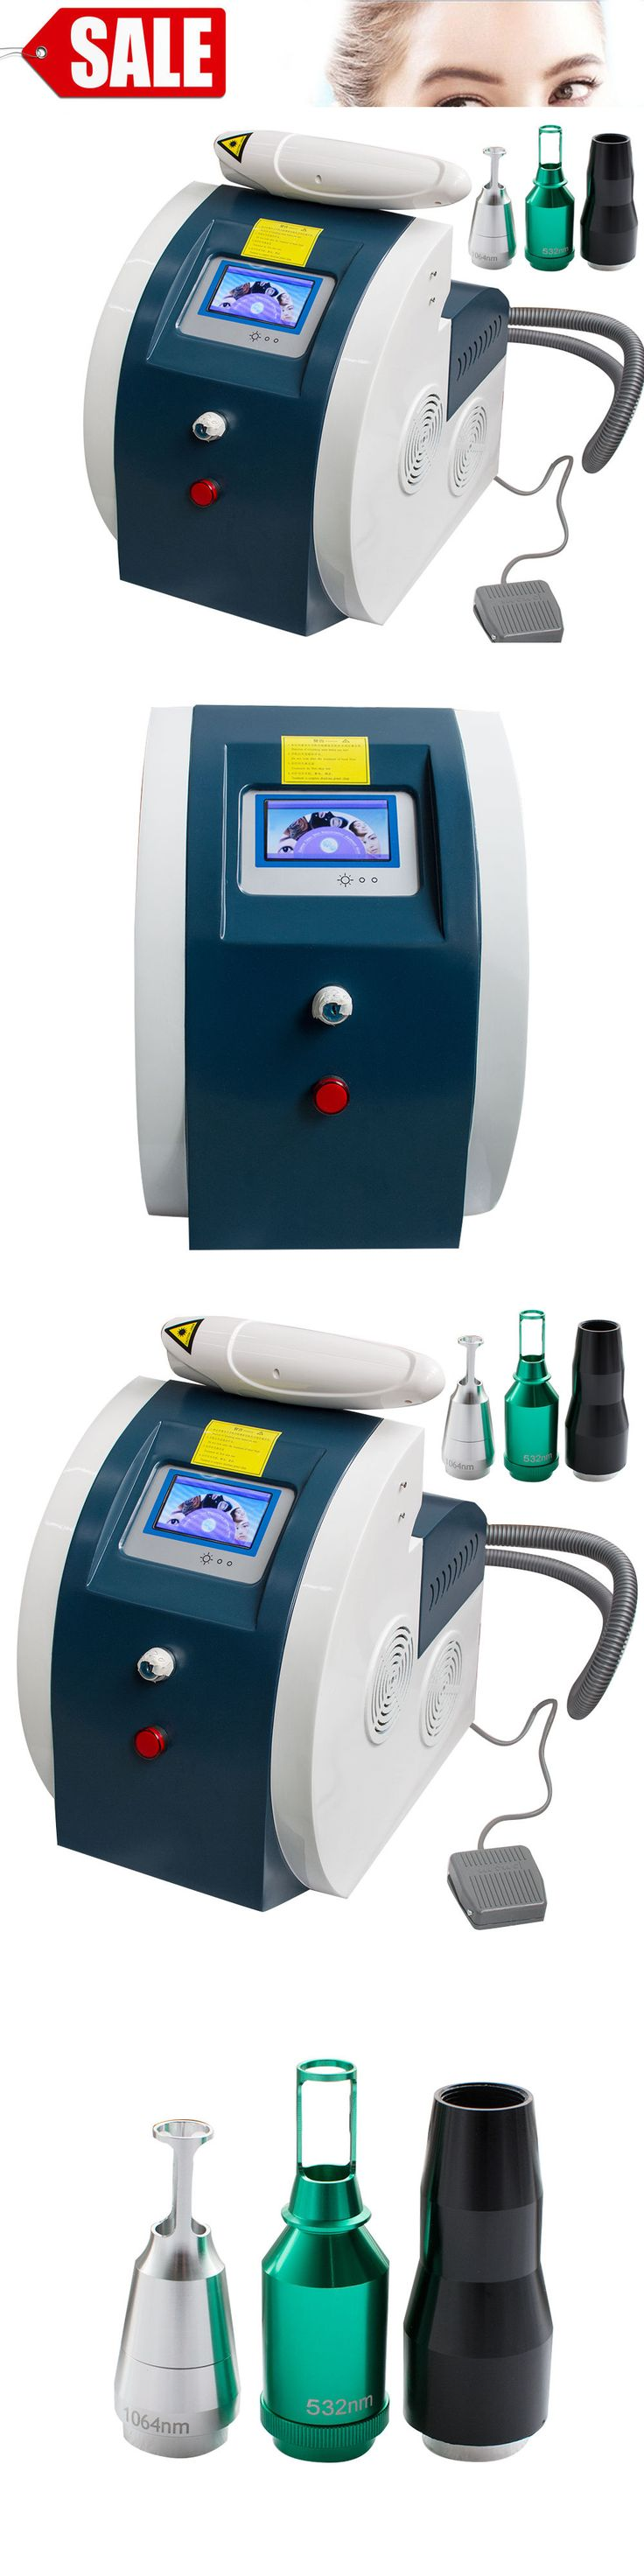 Tattoo Removal Machines: Tattoo Removal Eyebrow Pigment Removal Beauty Machine Remove Eye Line Lip Line -> BUY IT NOW ONLY: $1035 on eBay!